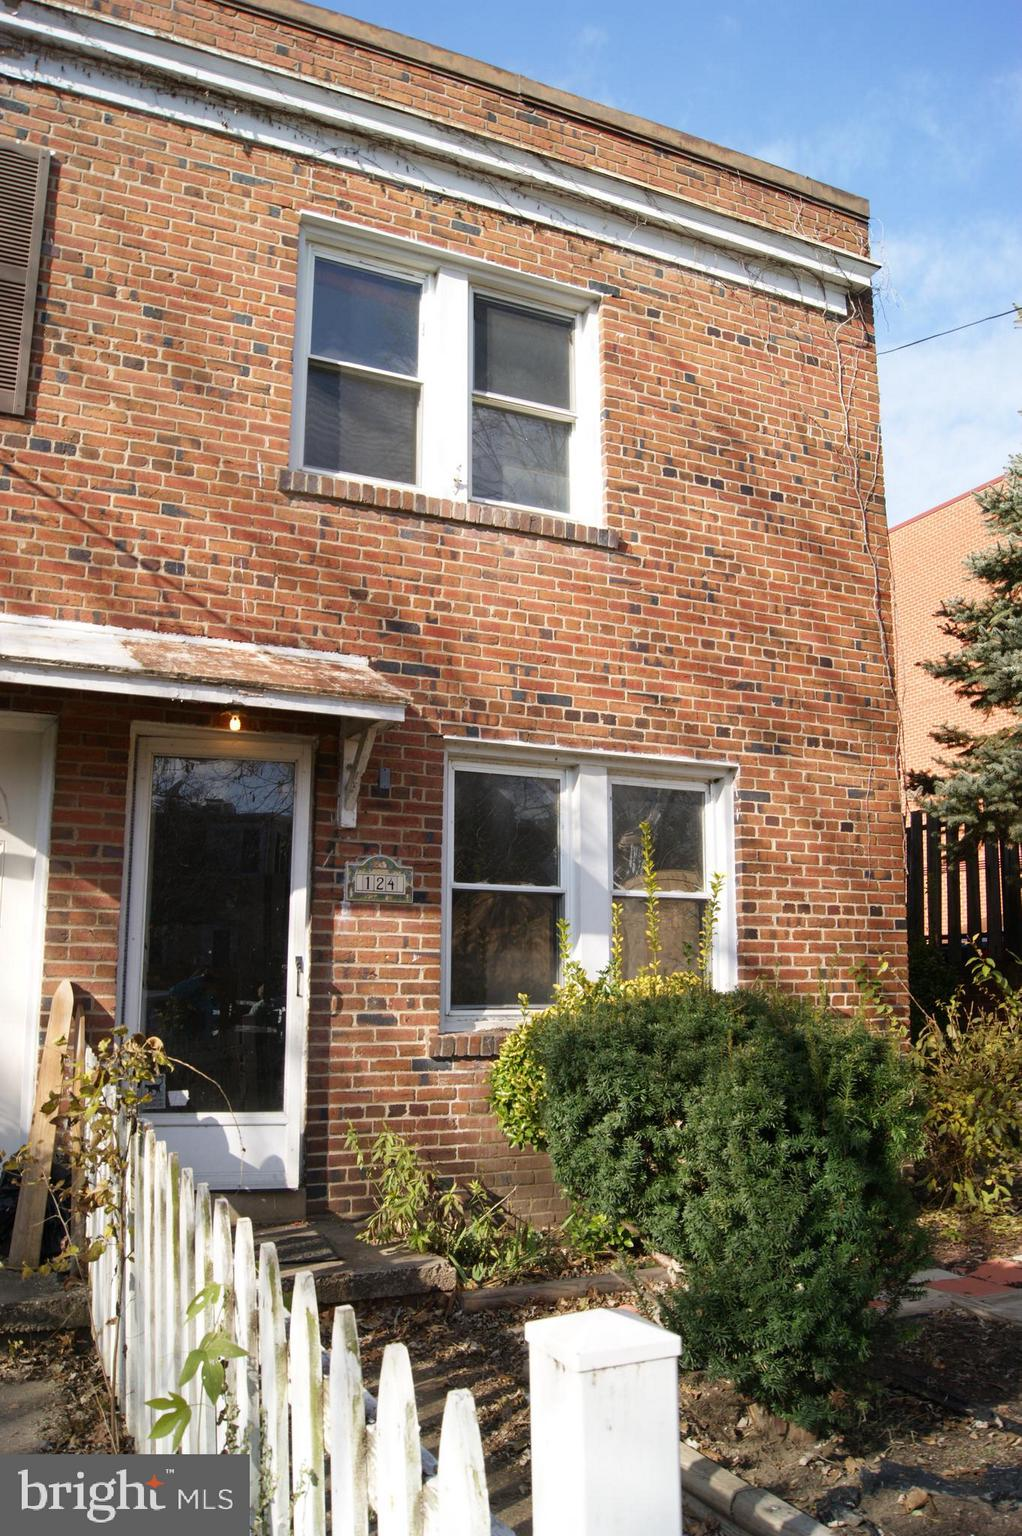 """Investor opportunity!  End unit row home w/extra wide yard  on dead end street ... just a quick walk  to King Street Metro, and shops and restaurants.    Sold  strictly """"AS IS"""", needs a lot of work but the upside potential is huge!  A perfect blank canvas for your imagination.   Cash only, will not qualify for financing.  Perfect opportunity to renovate and resell."""